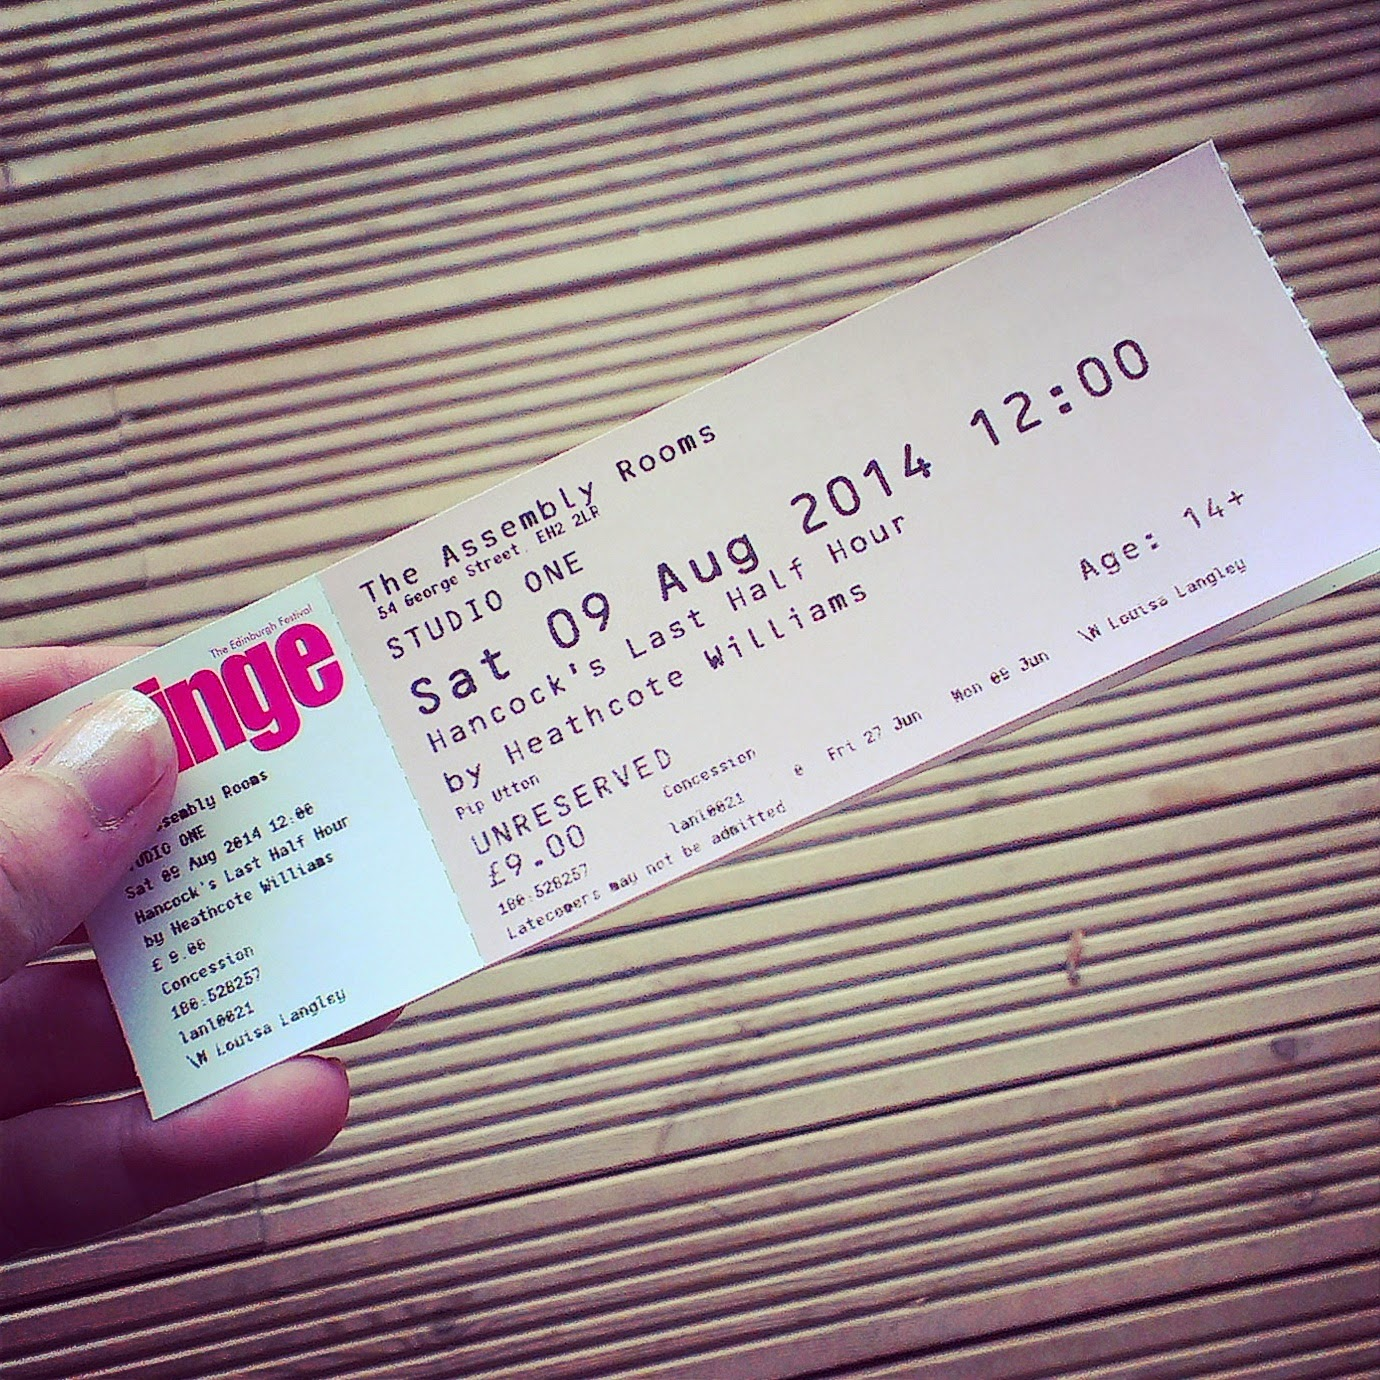 Tickets for an Edinburgh Fringe show